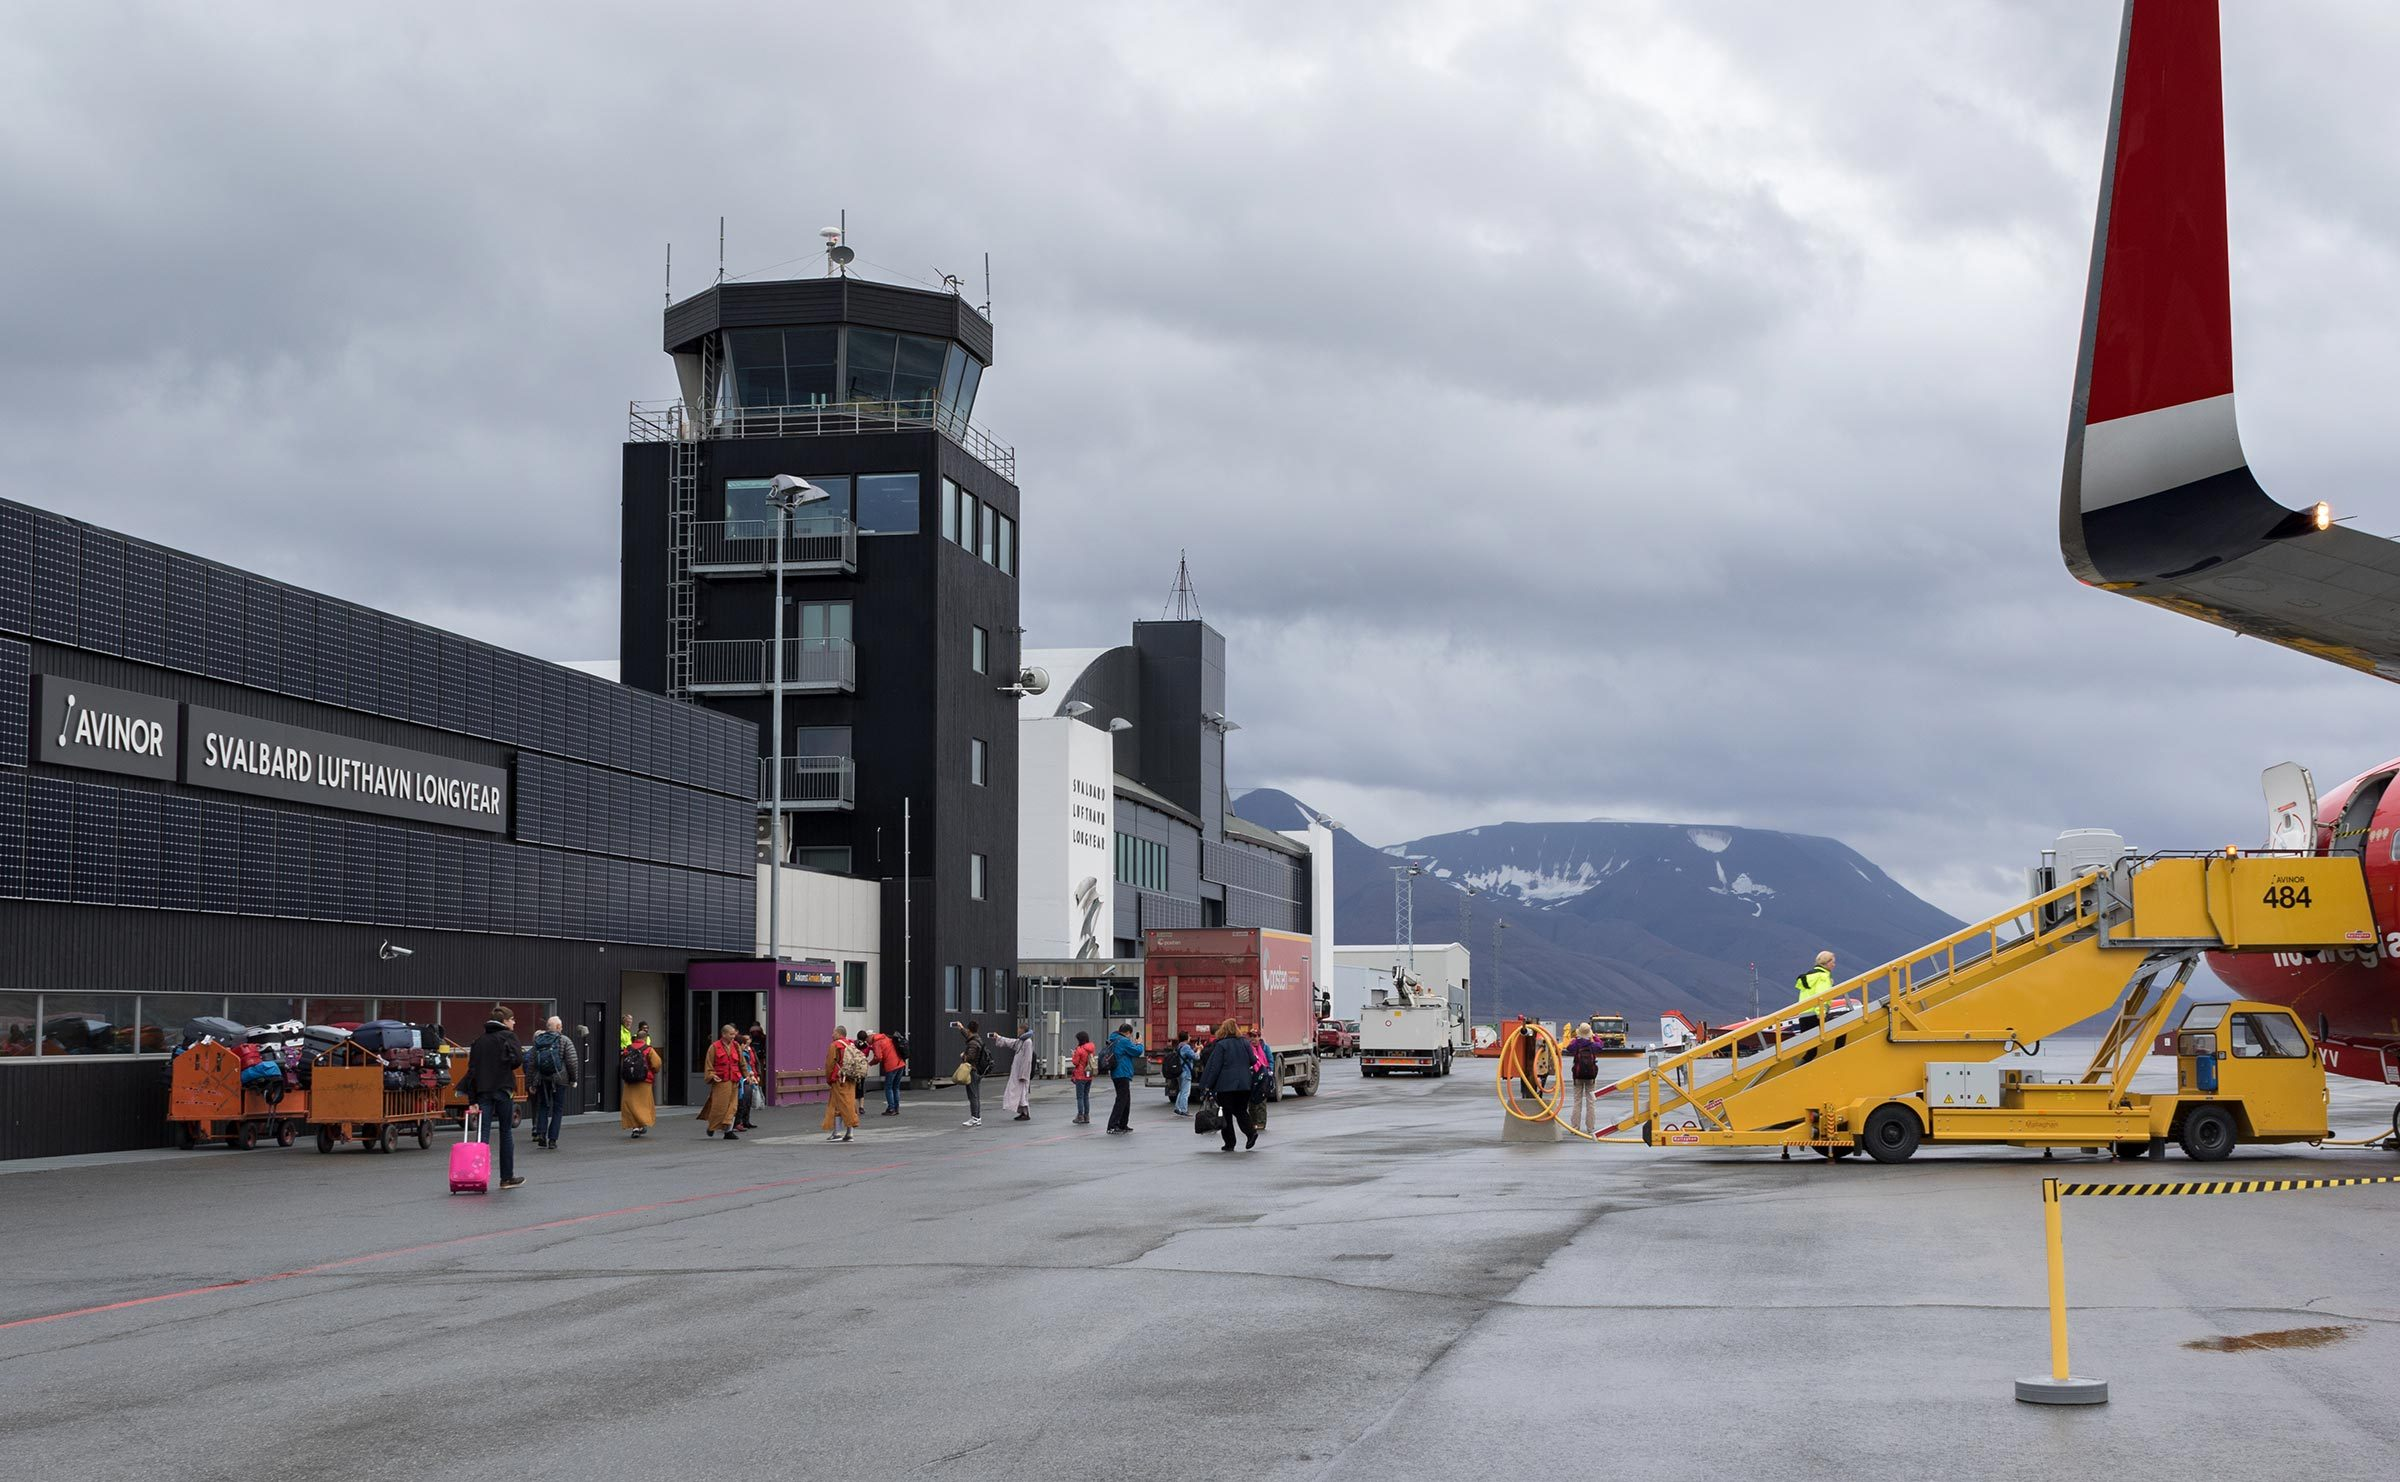 Longyearbyen, Svalbard - August 2017: Passengers disembark from Norwegian aircraft at the Svalbard airport Longyear (LYR) - northernmost airport in the world with public scheduled flights.